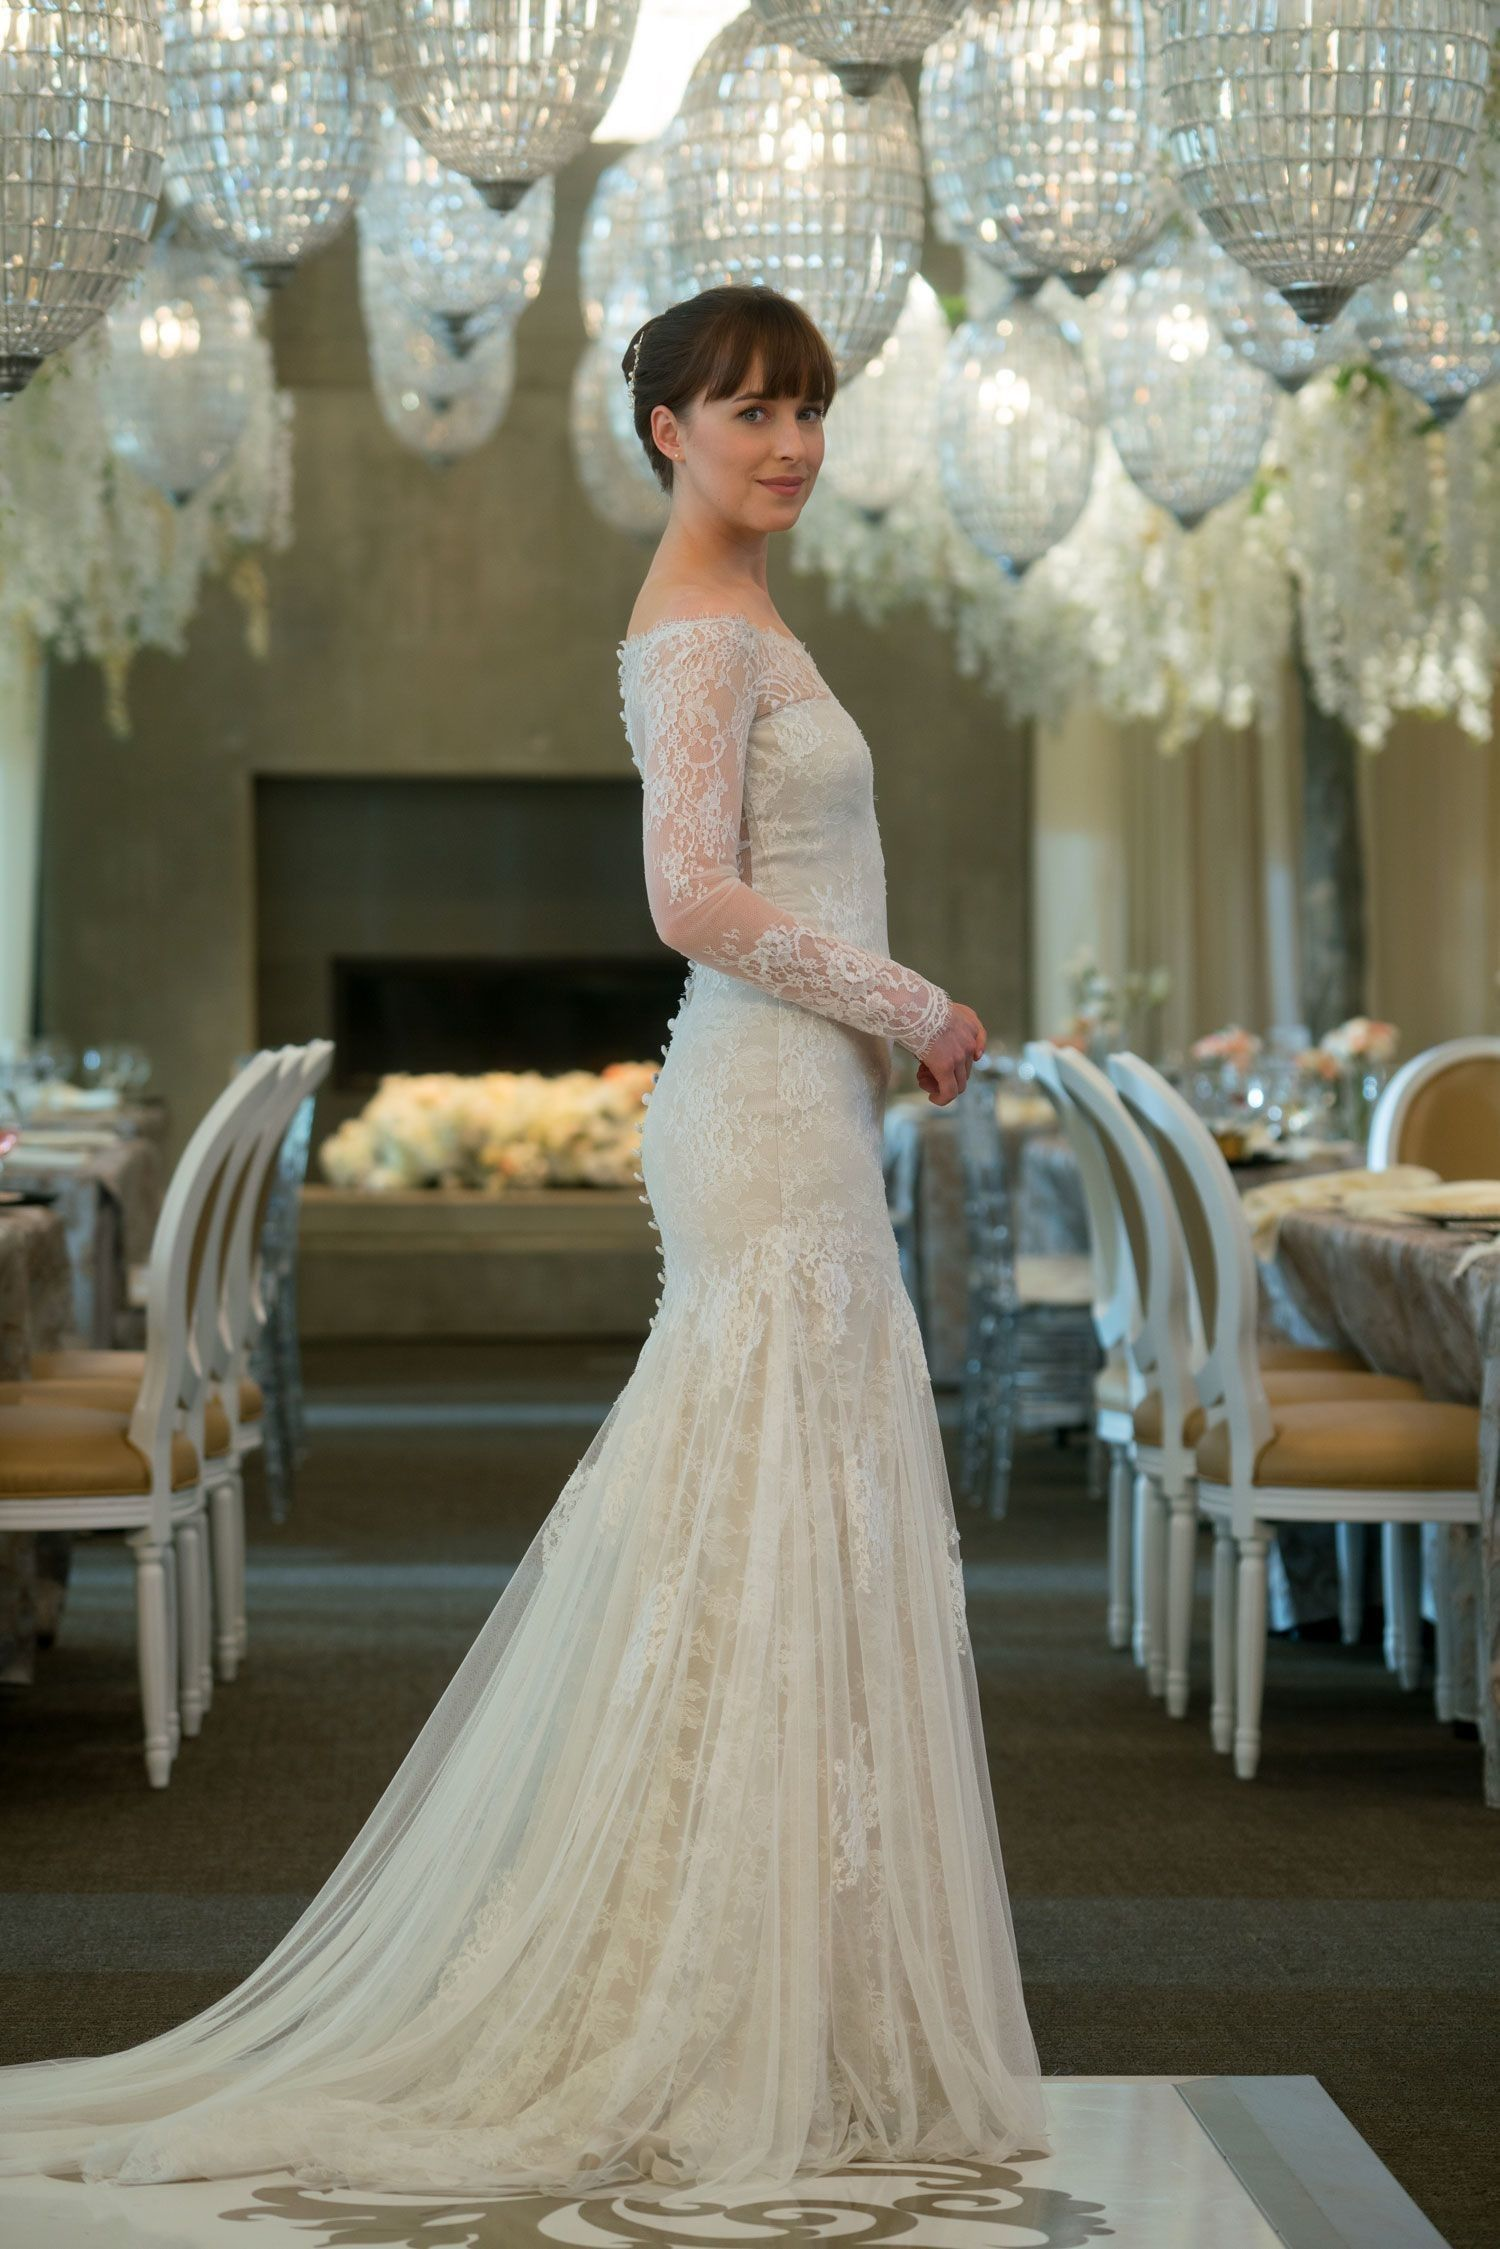 The Best And Worst Tv And Film Wedding Dresses Movie Wedding Dresses Worst Wedding Dress Beautiful Wedding Gowns [ 2249 x 1500 Pixel ]